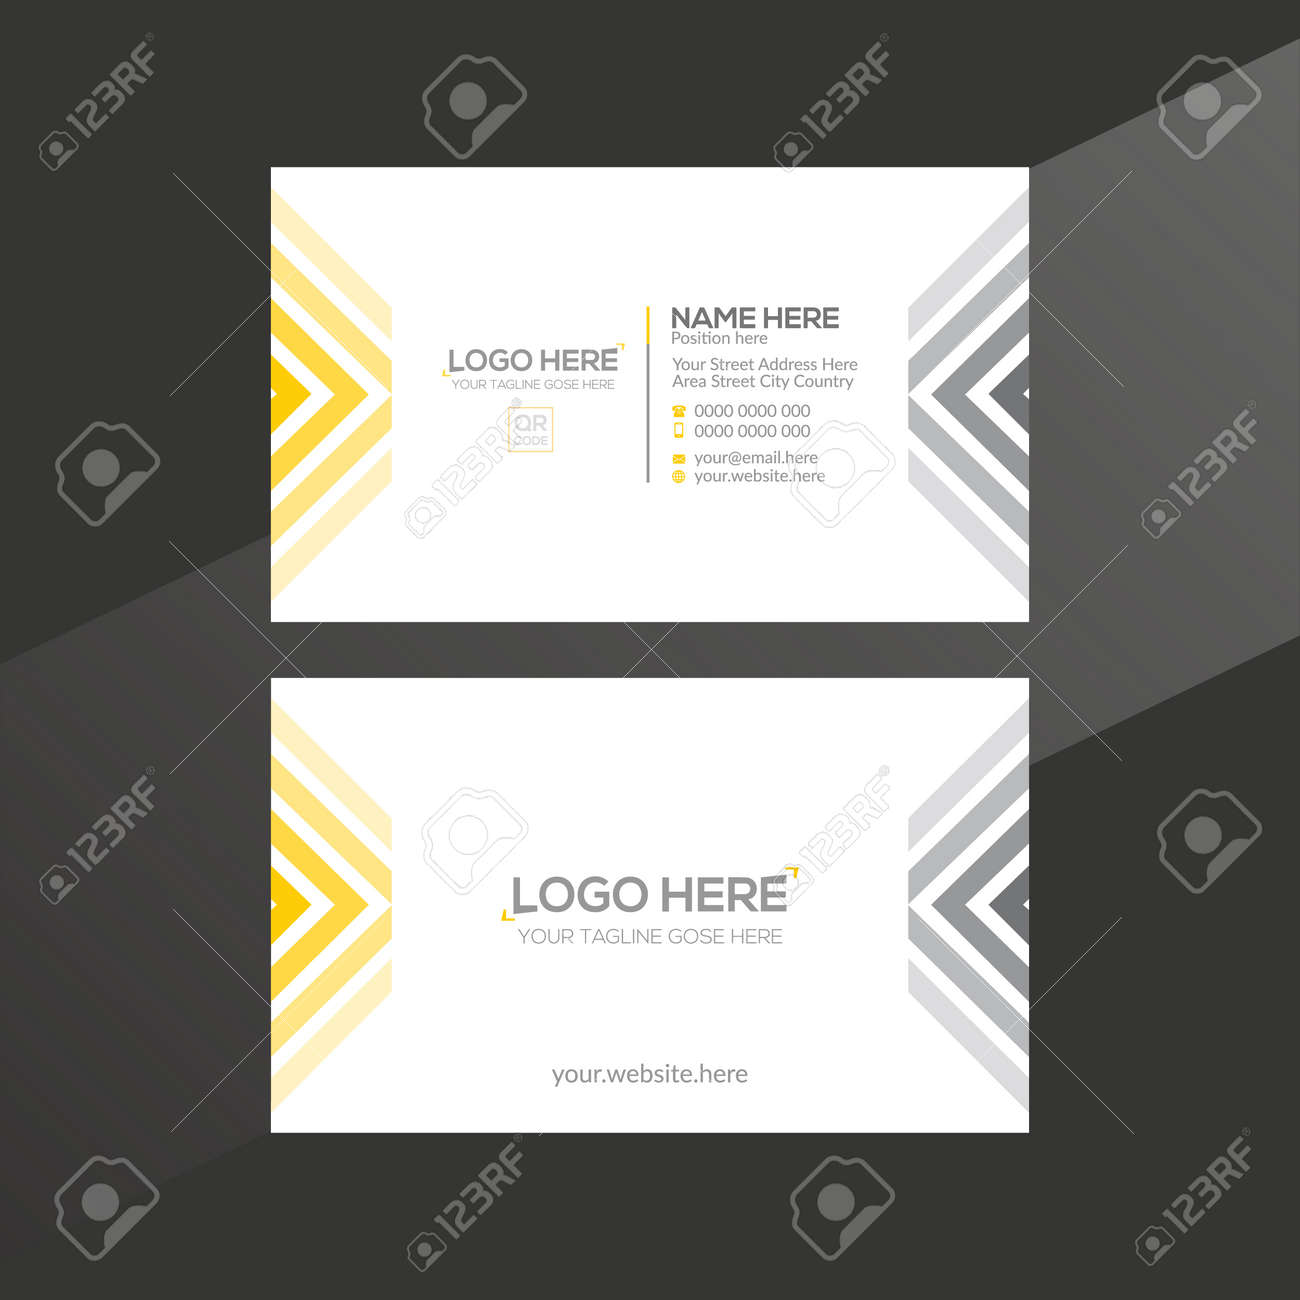 orange and gray colored vector business card design for any company use - 172189114